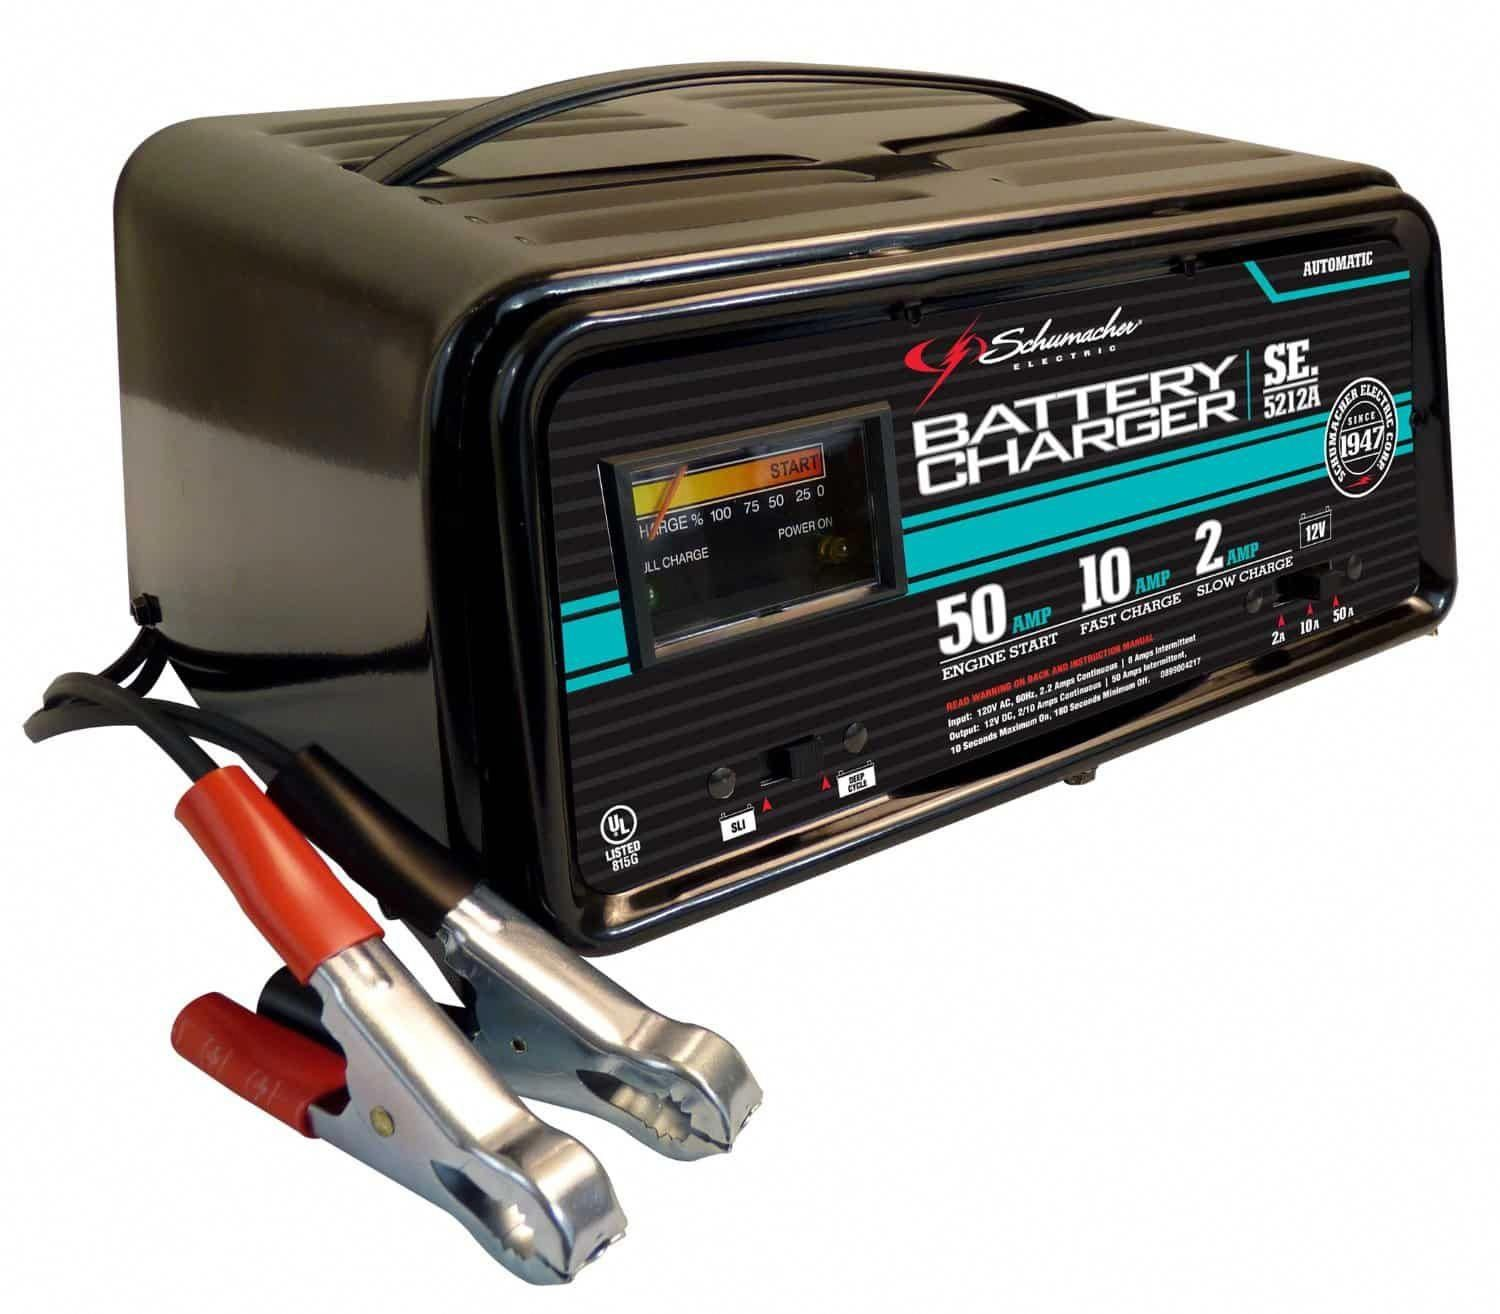 Battery Reconditioning Desulfate Batteryreconditioners Latestantiagingproducts Recondition Batteries Repair Car Battery